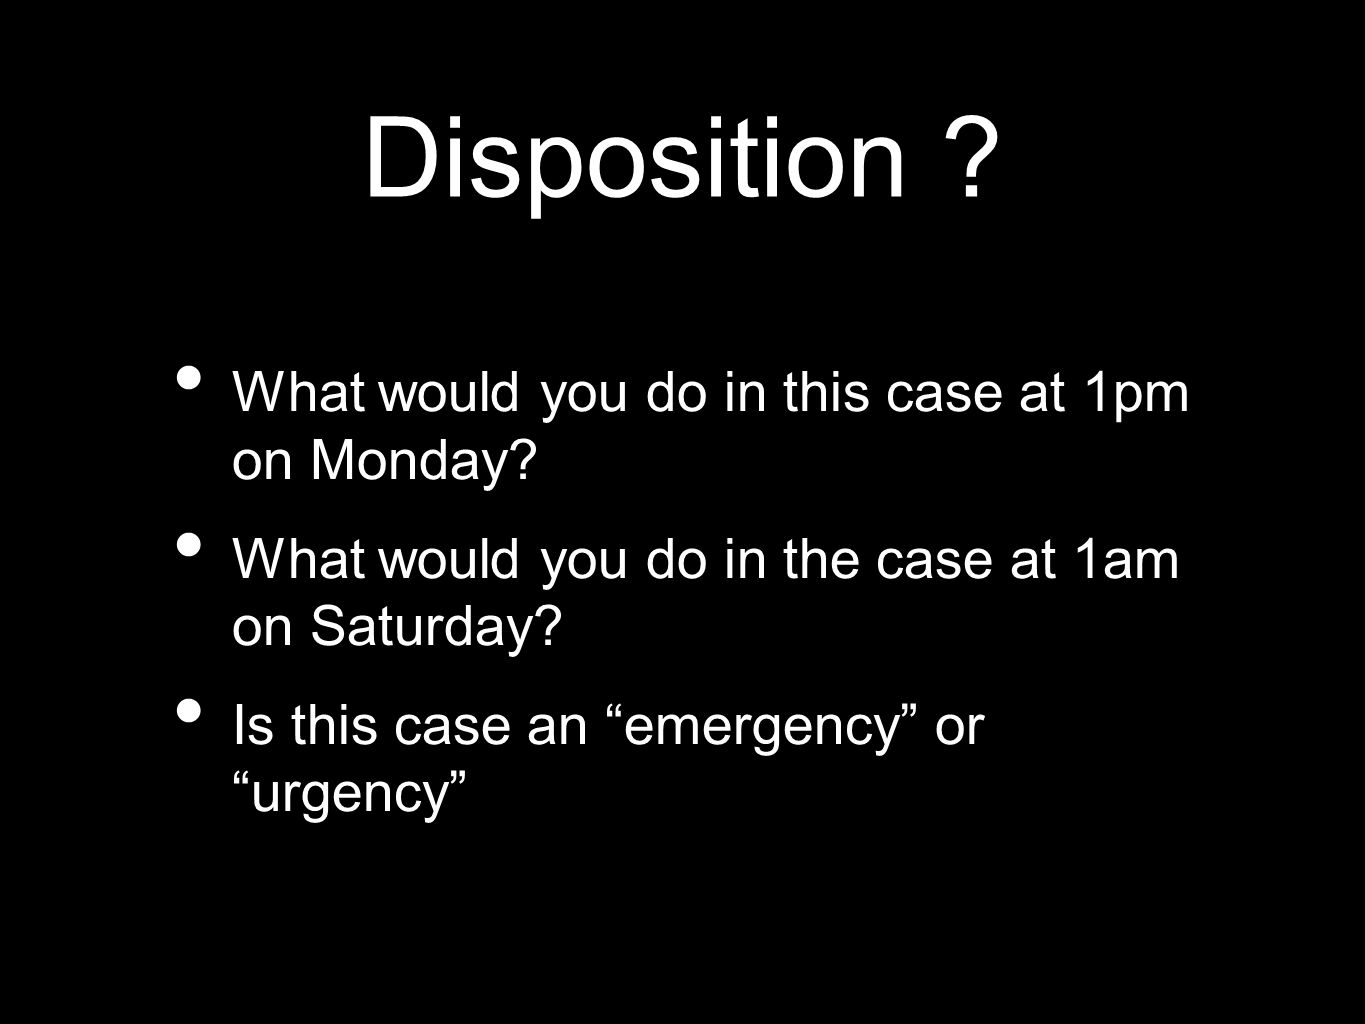 Disposition ? What would you do in this case at 1pm on Monday? What would you do in the case at 1am on Saturday? Is this case an emergency or urgency